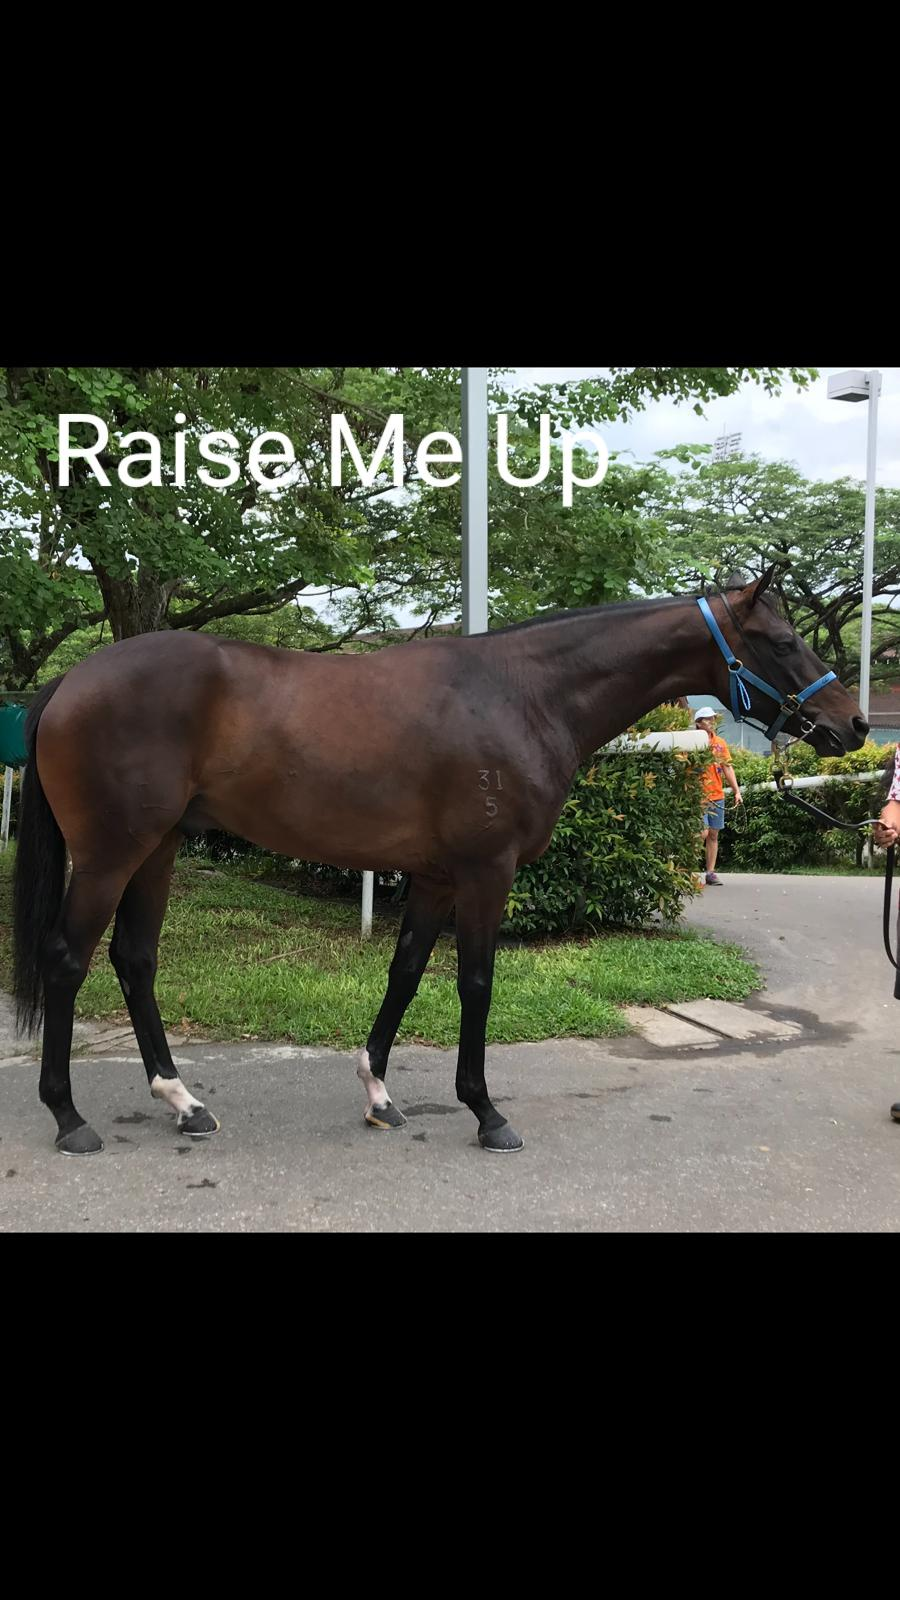 Horse for Sale | Selangor Turf Club